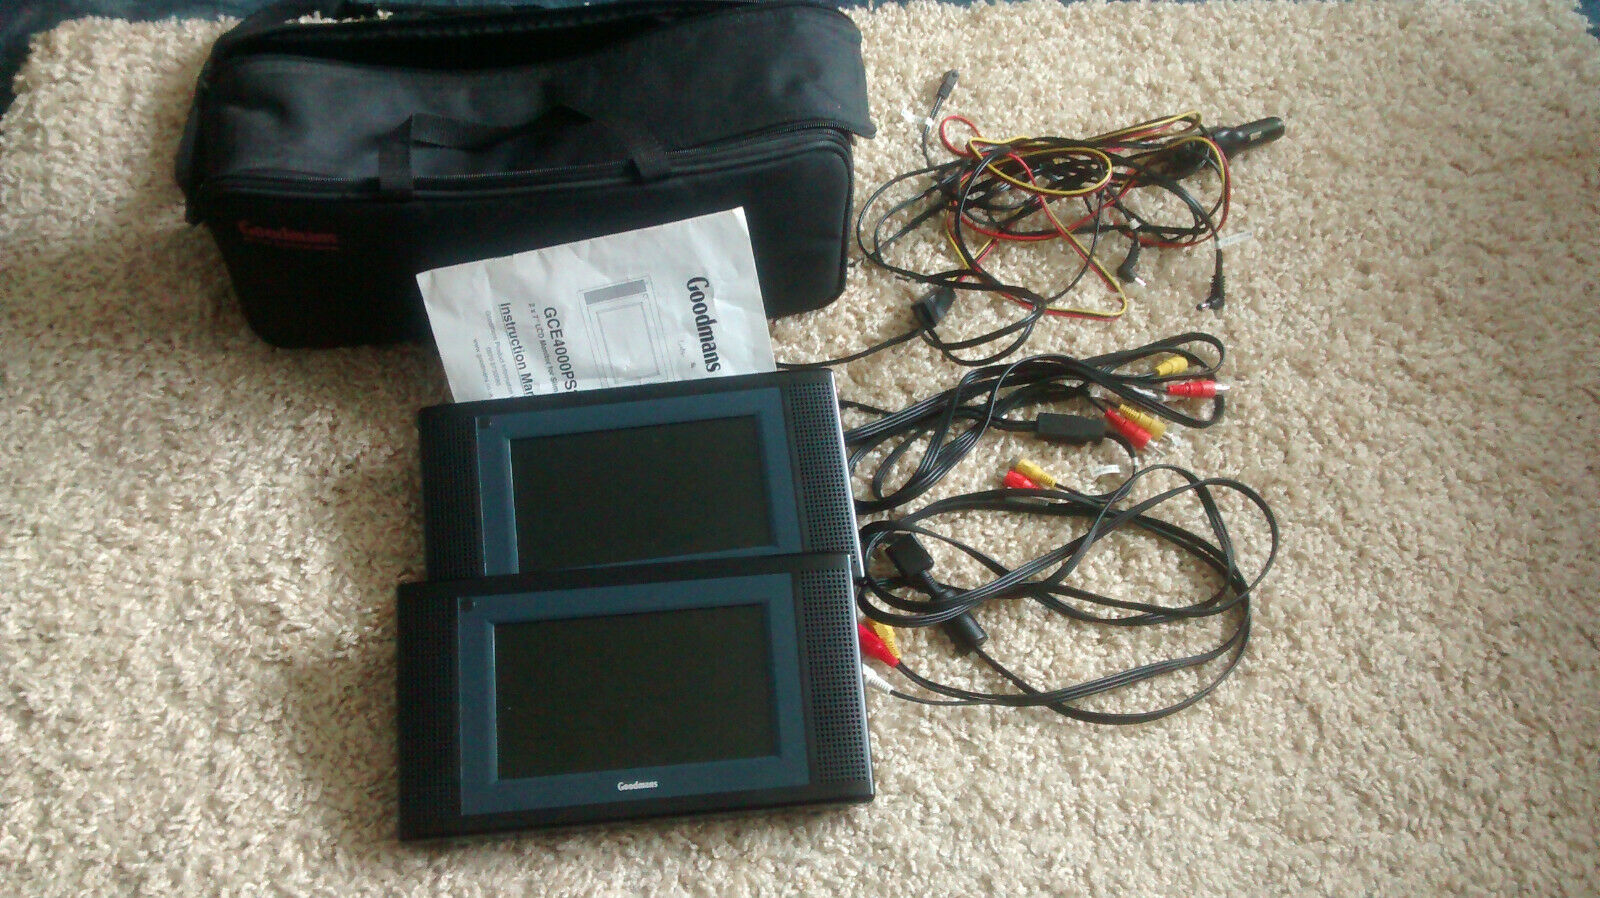 2 Goodmans PS2 Portable 6 inch LCD Monitor + 2 Controllers + Carry Case